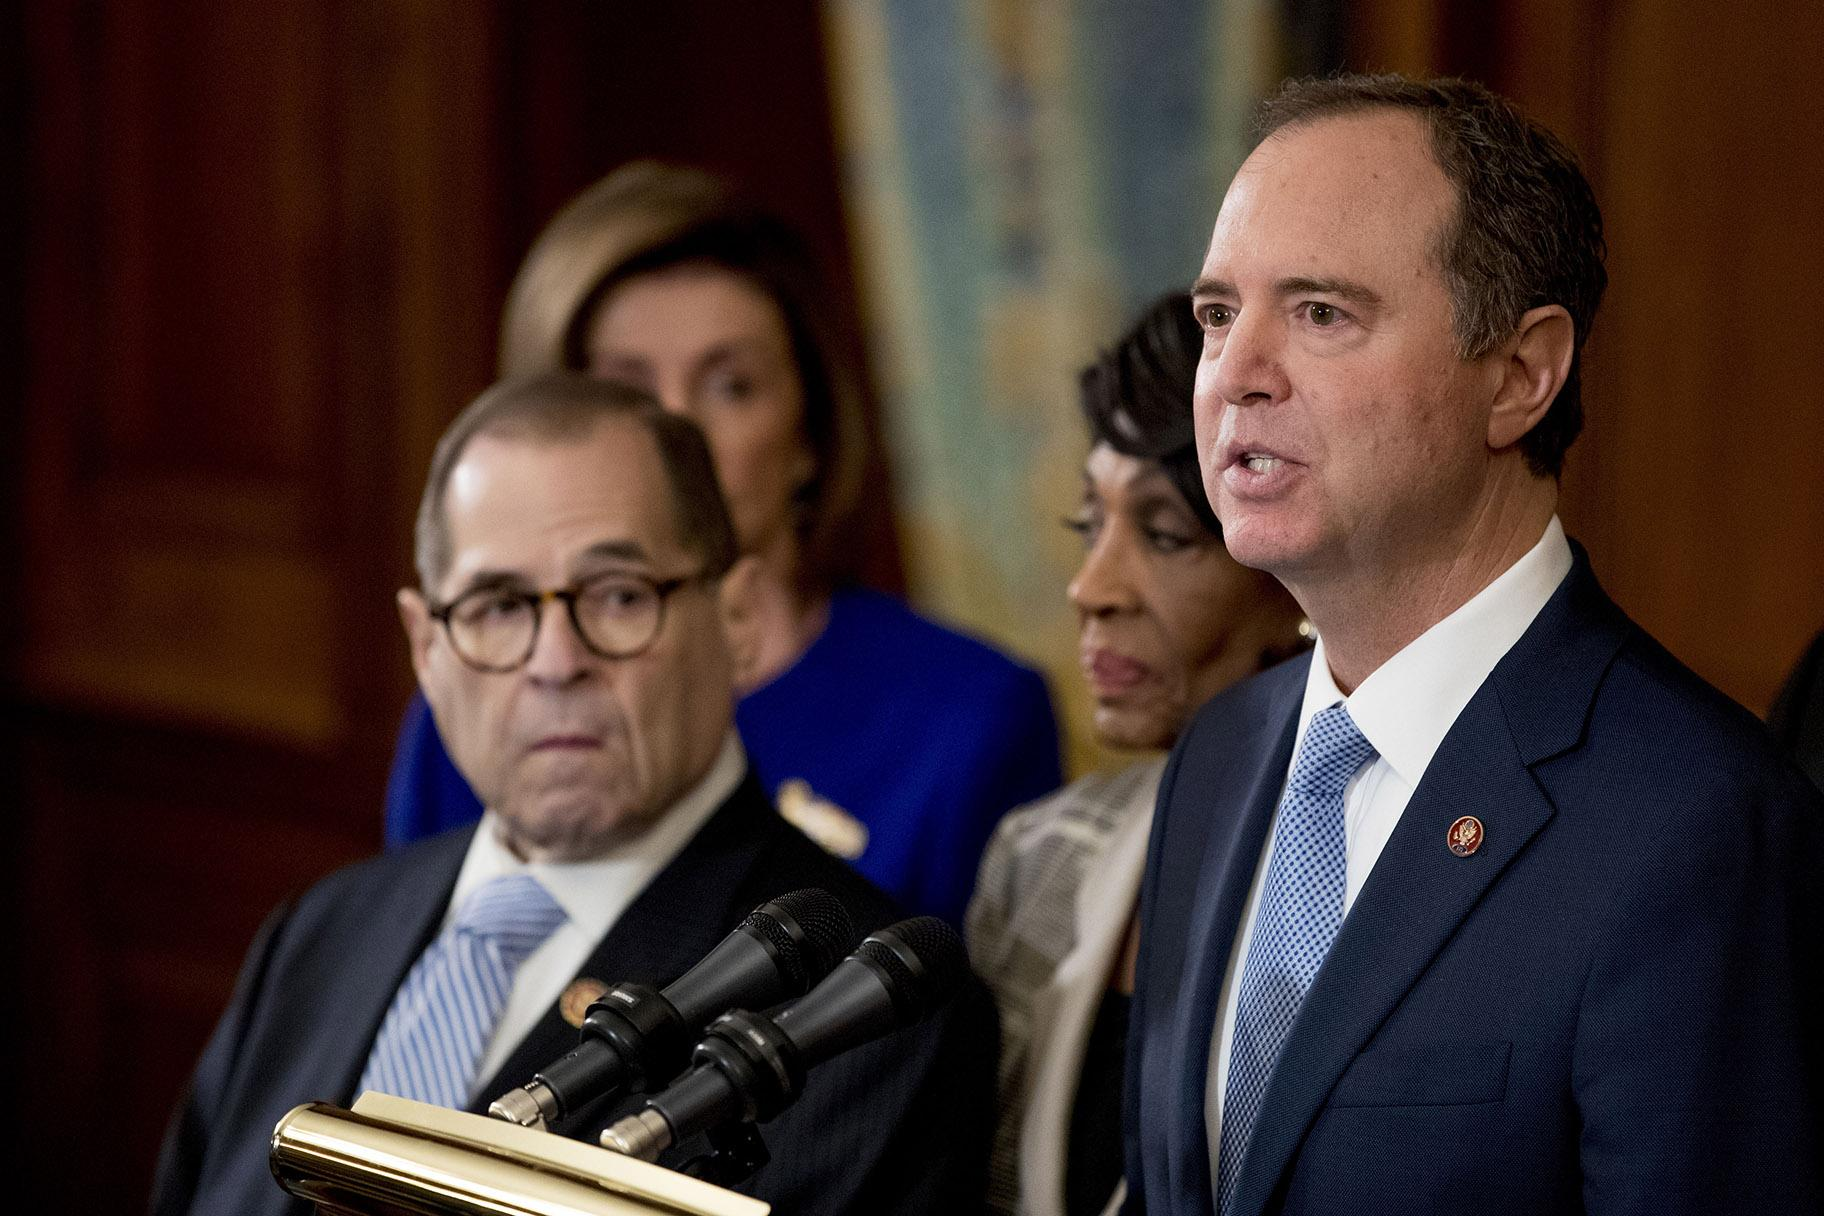 Rep. Adam Schiff, D-Calif., Chairman of the House Intelligence Committee, right, speaks with, from left, Chairman of the House Judiciary Committee Jerrold Nadler, D-N.Y., House Speaker Nancy Pelosi and Chairwoman of the House Financial Services Committee Maxine Waters, D-Calif., second from right, during a news conference to unveil articles of impeachment against President Donald Trump, abuse of power and obstruction of Congress, Tuesday, Dec. 10, 2019, in Washington. (AP Photo / Andrew Harnik)